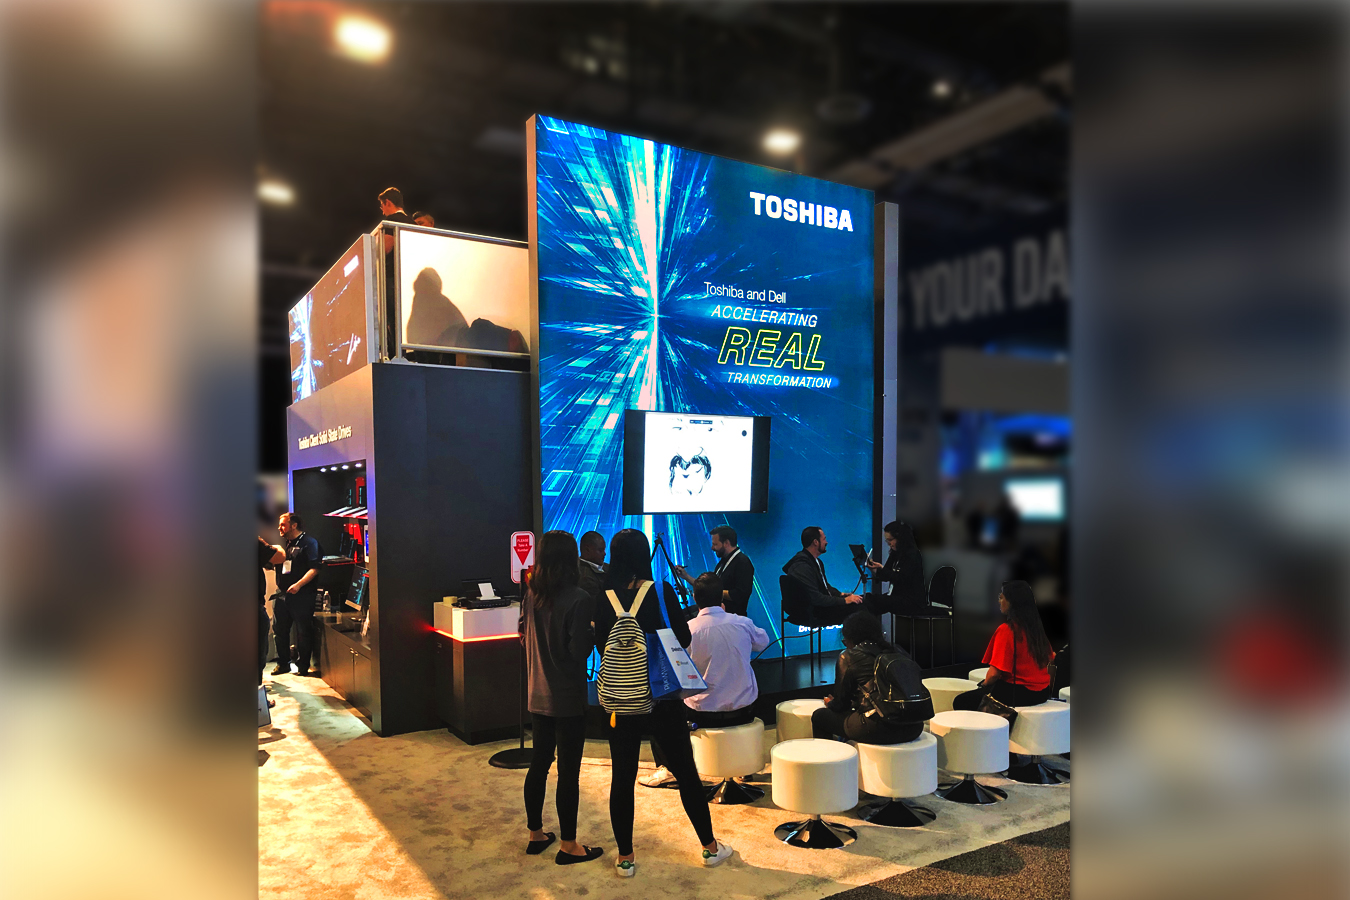 Toshiba MA 2-story booth with lightbox